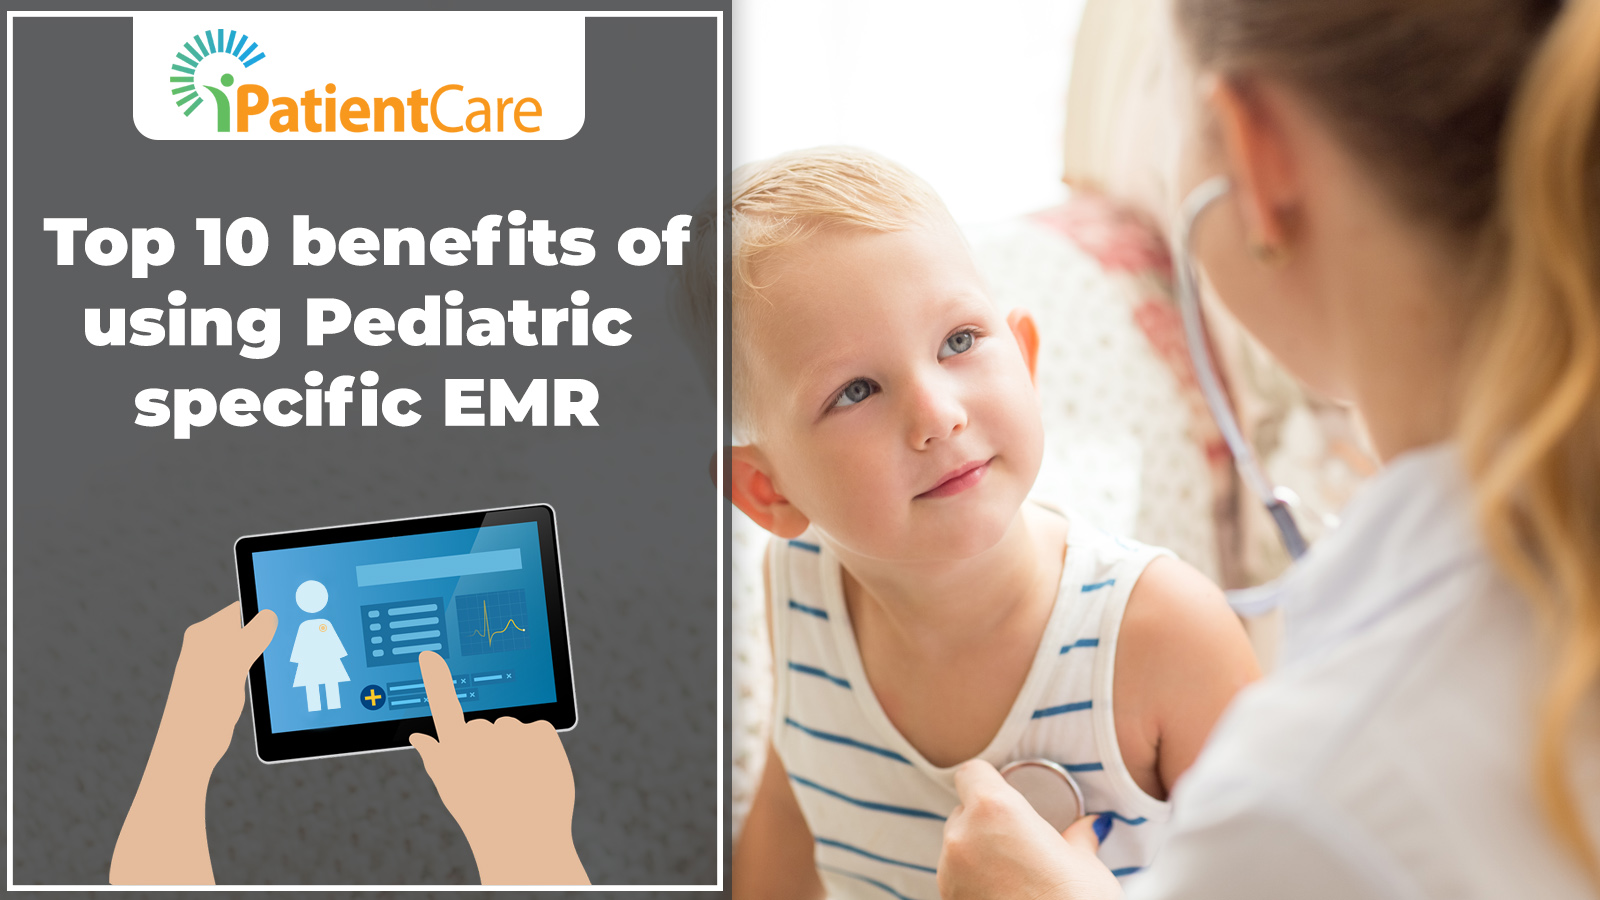 Top 10 benefits of using Pediatric specific EMR